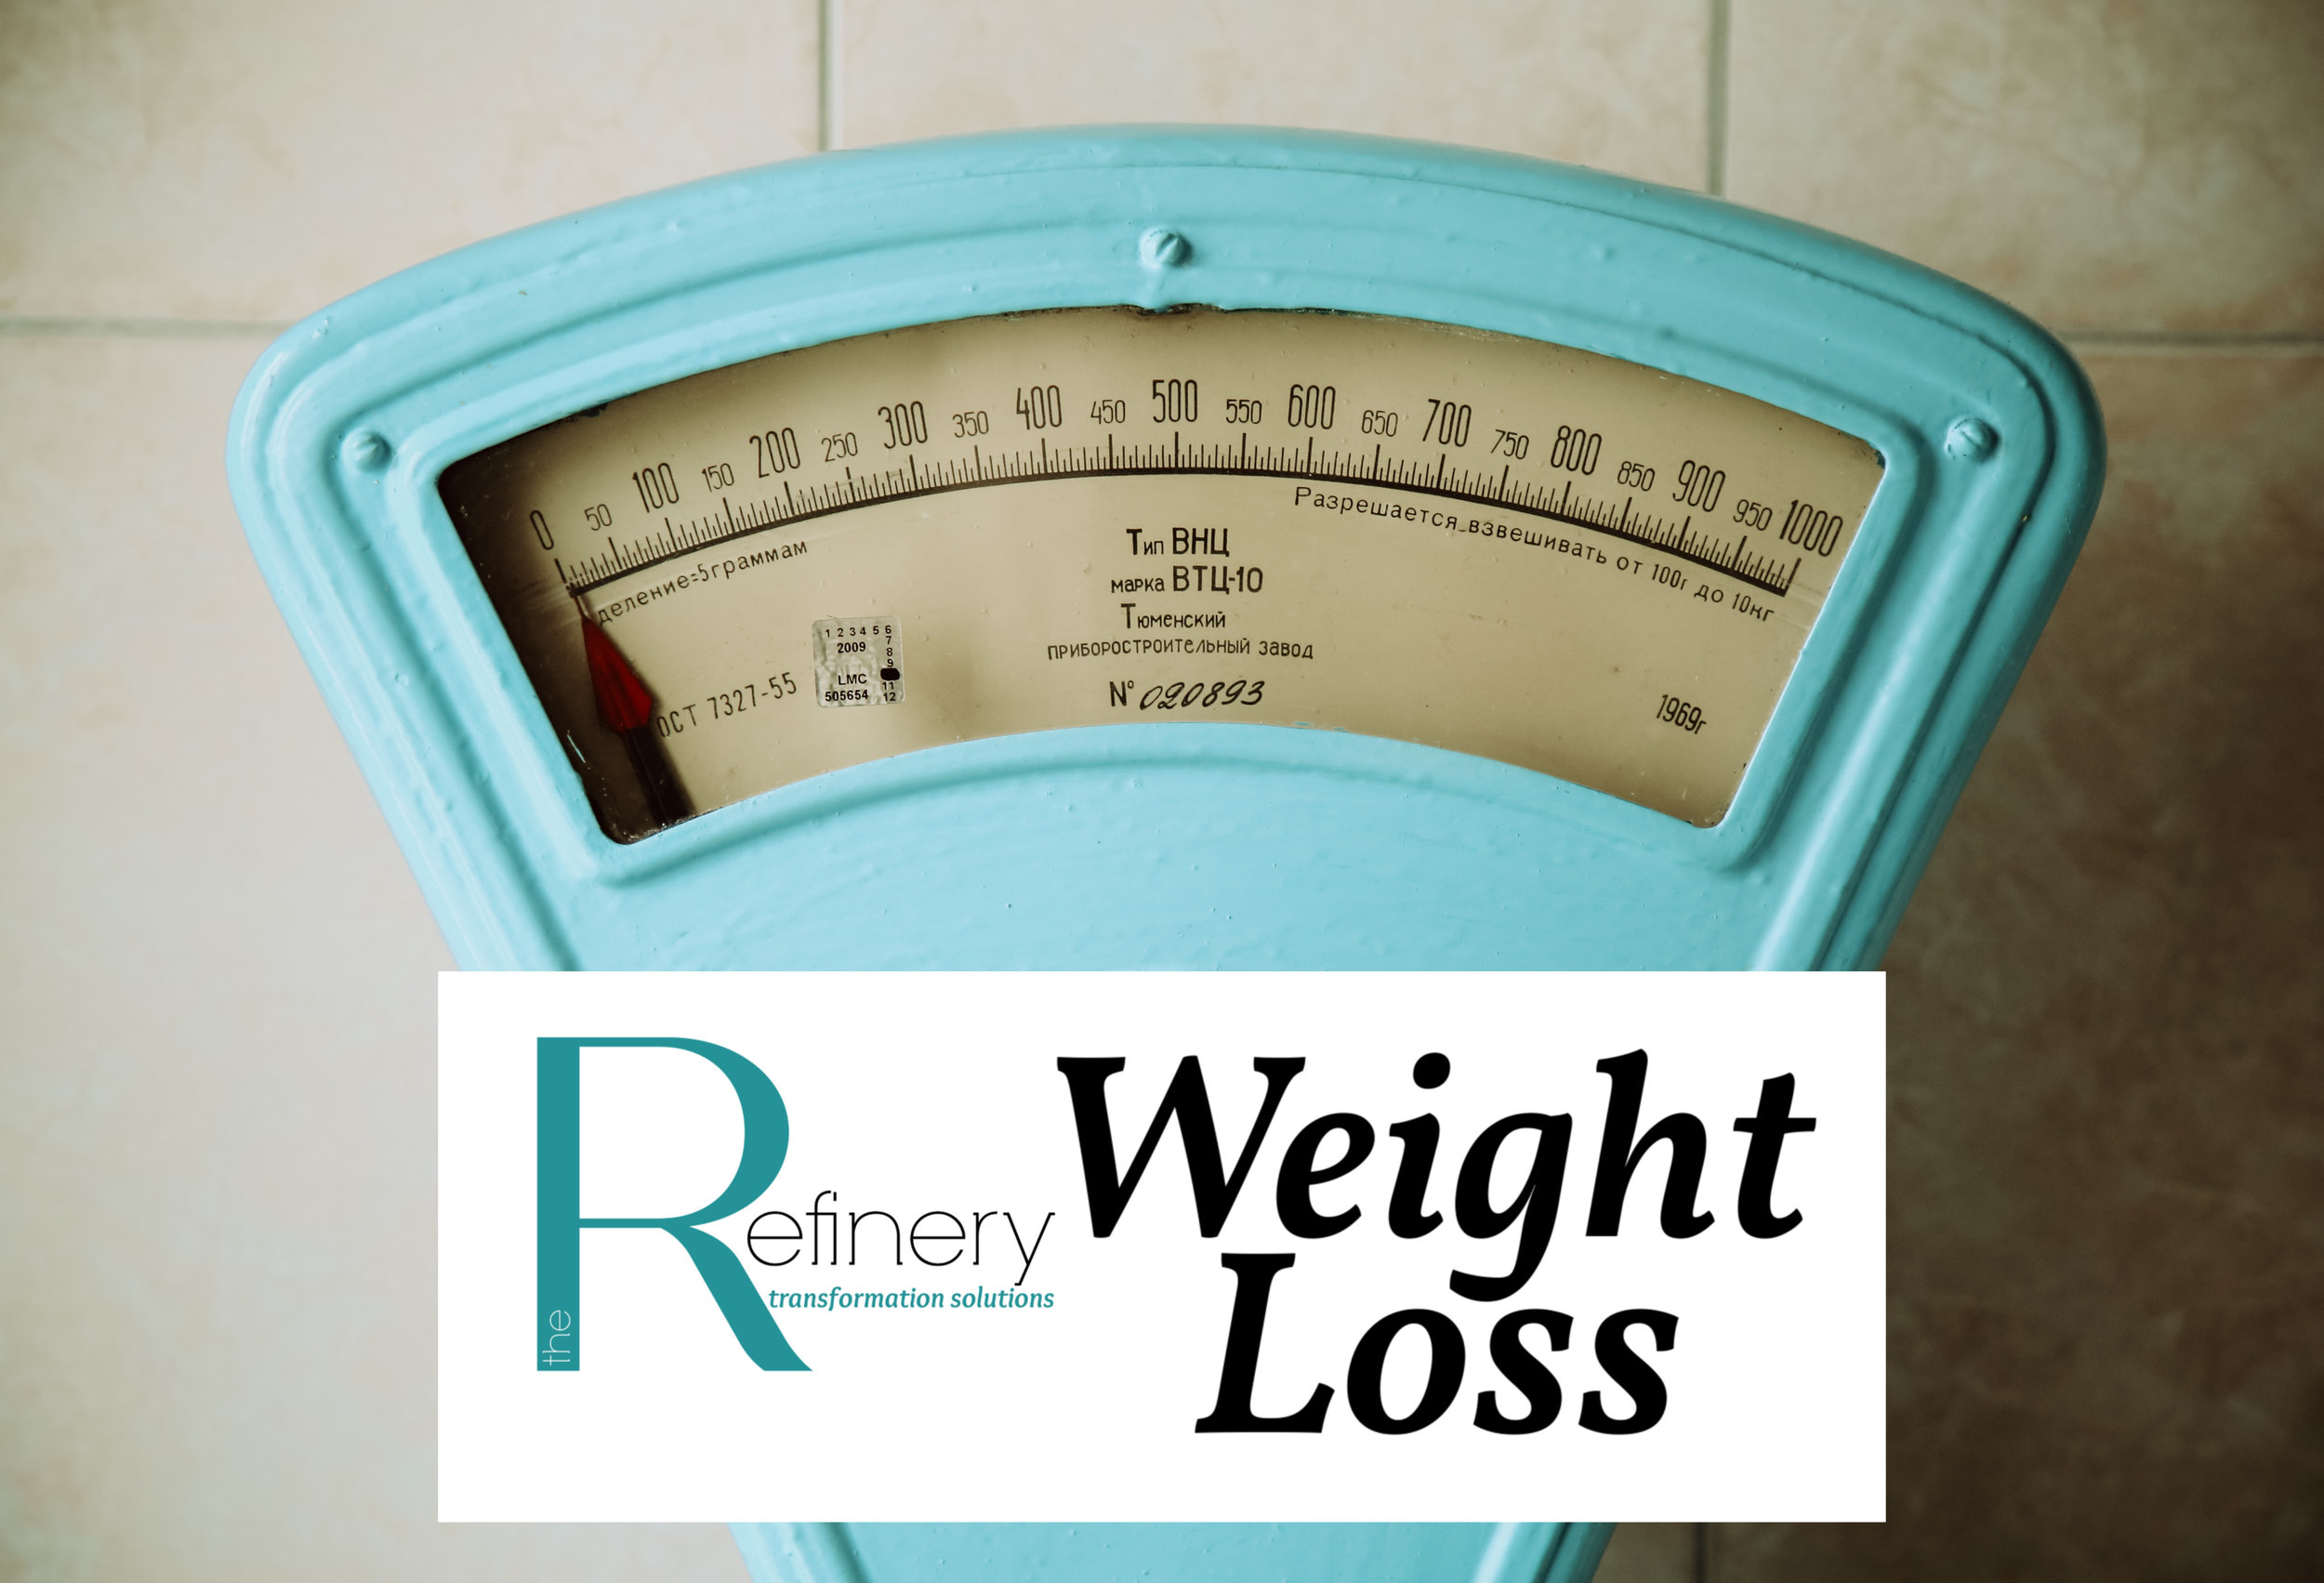 Refinery Title Image Weight.jpg